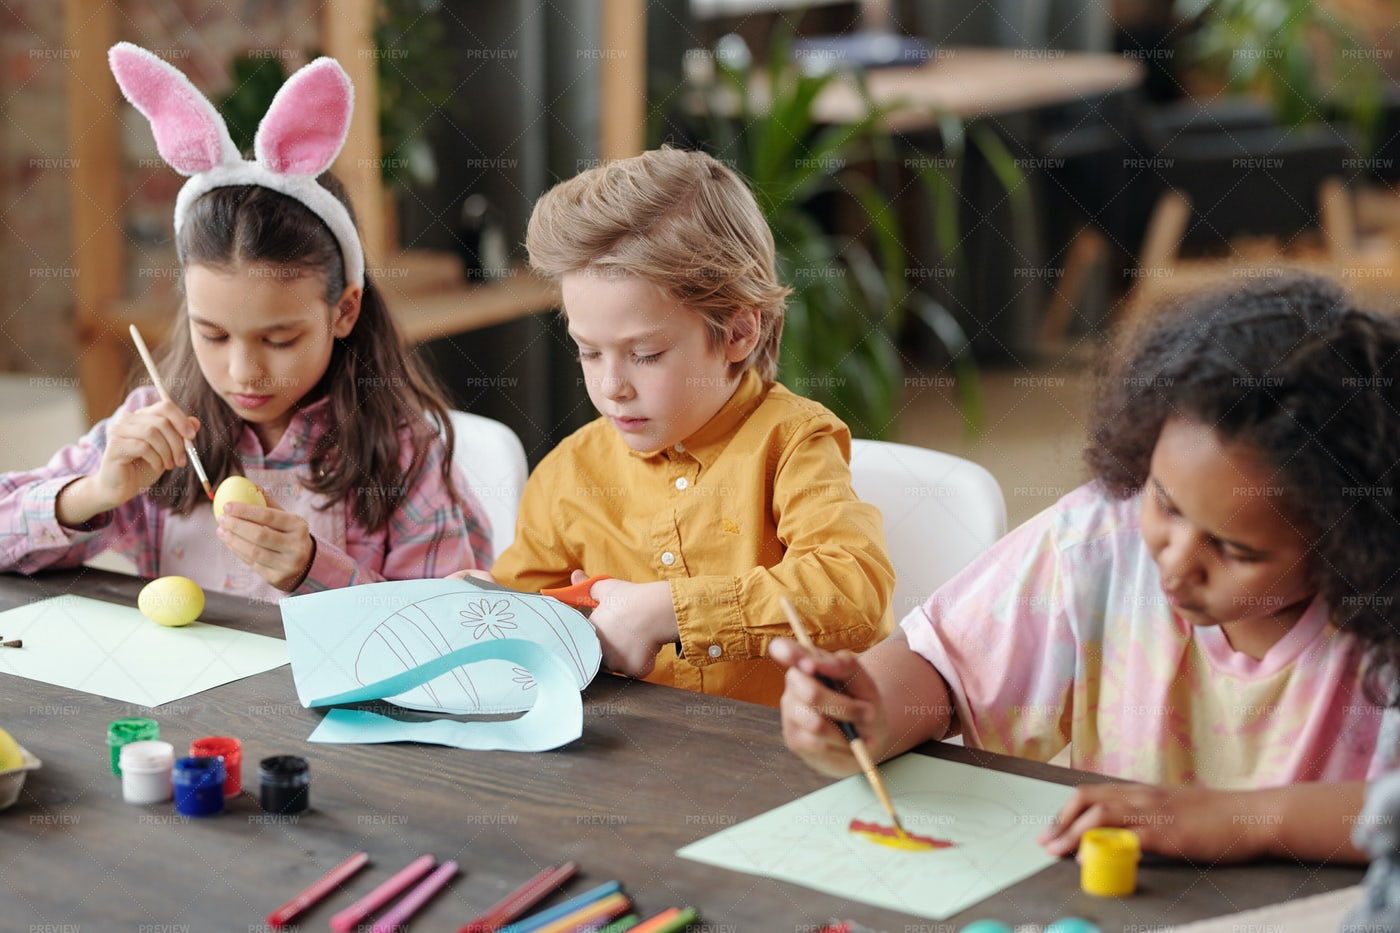 Children Painting At The Table: Stock Photos